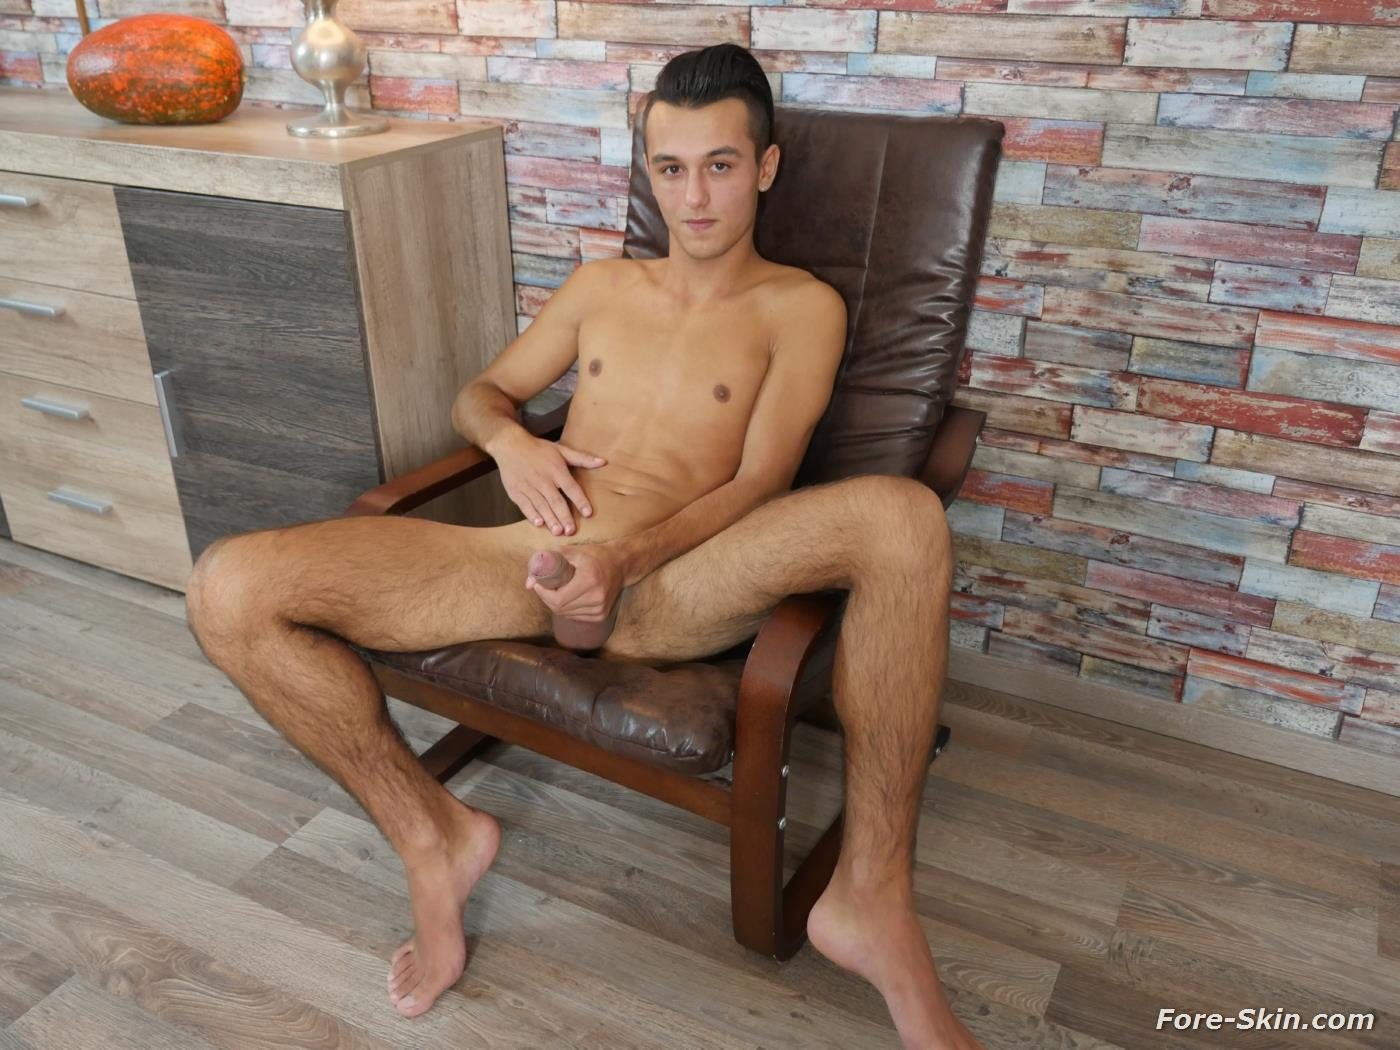 Fore-Skin-Martin-Muse-Twink-Twink-Jerks-His-Big-Uncut-Cock-Amateur-Gay-Porn-13 Hairy Legged Twink Plays With His Foreskin And Big Uncut Cock